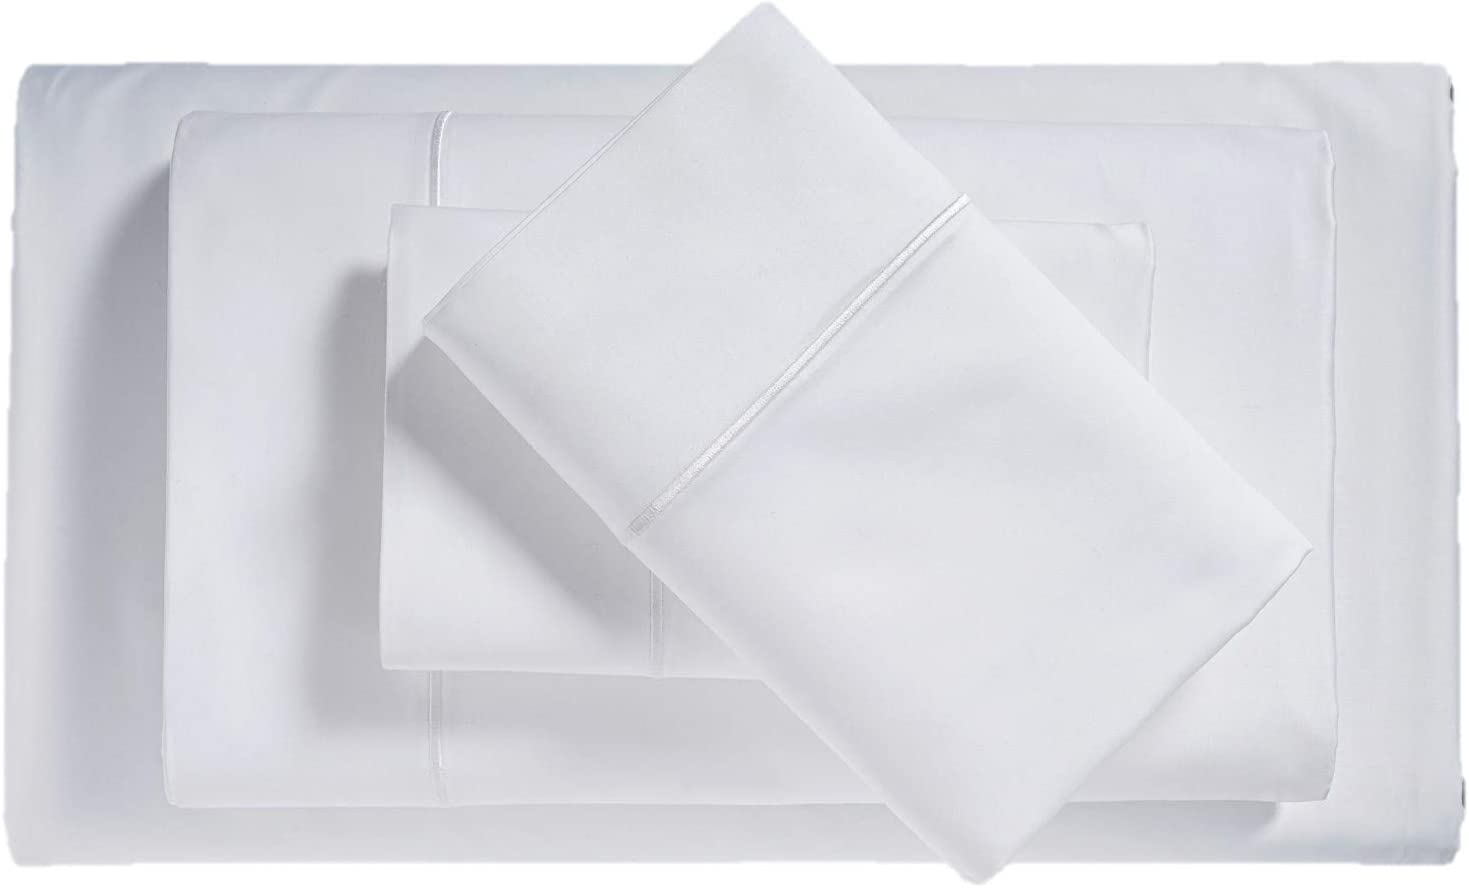 Isabella Cromwell Egyptian Cotton Blend 4 Piece Sheet Set 1000 Thread Count Solid 16 Deep Pockets Fits Upto 18 Mattresses Sateen Weave Soft Comfort Bedsheets Bedding Hotel Luxury Queen White Home Kitchen